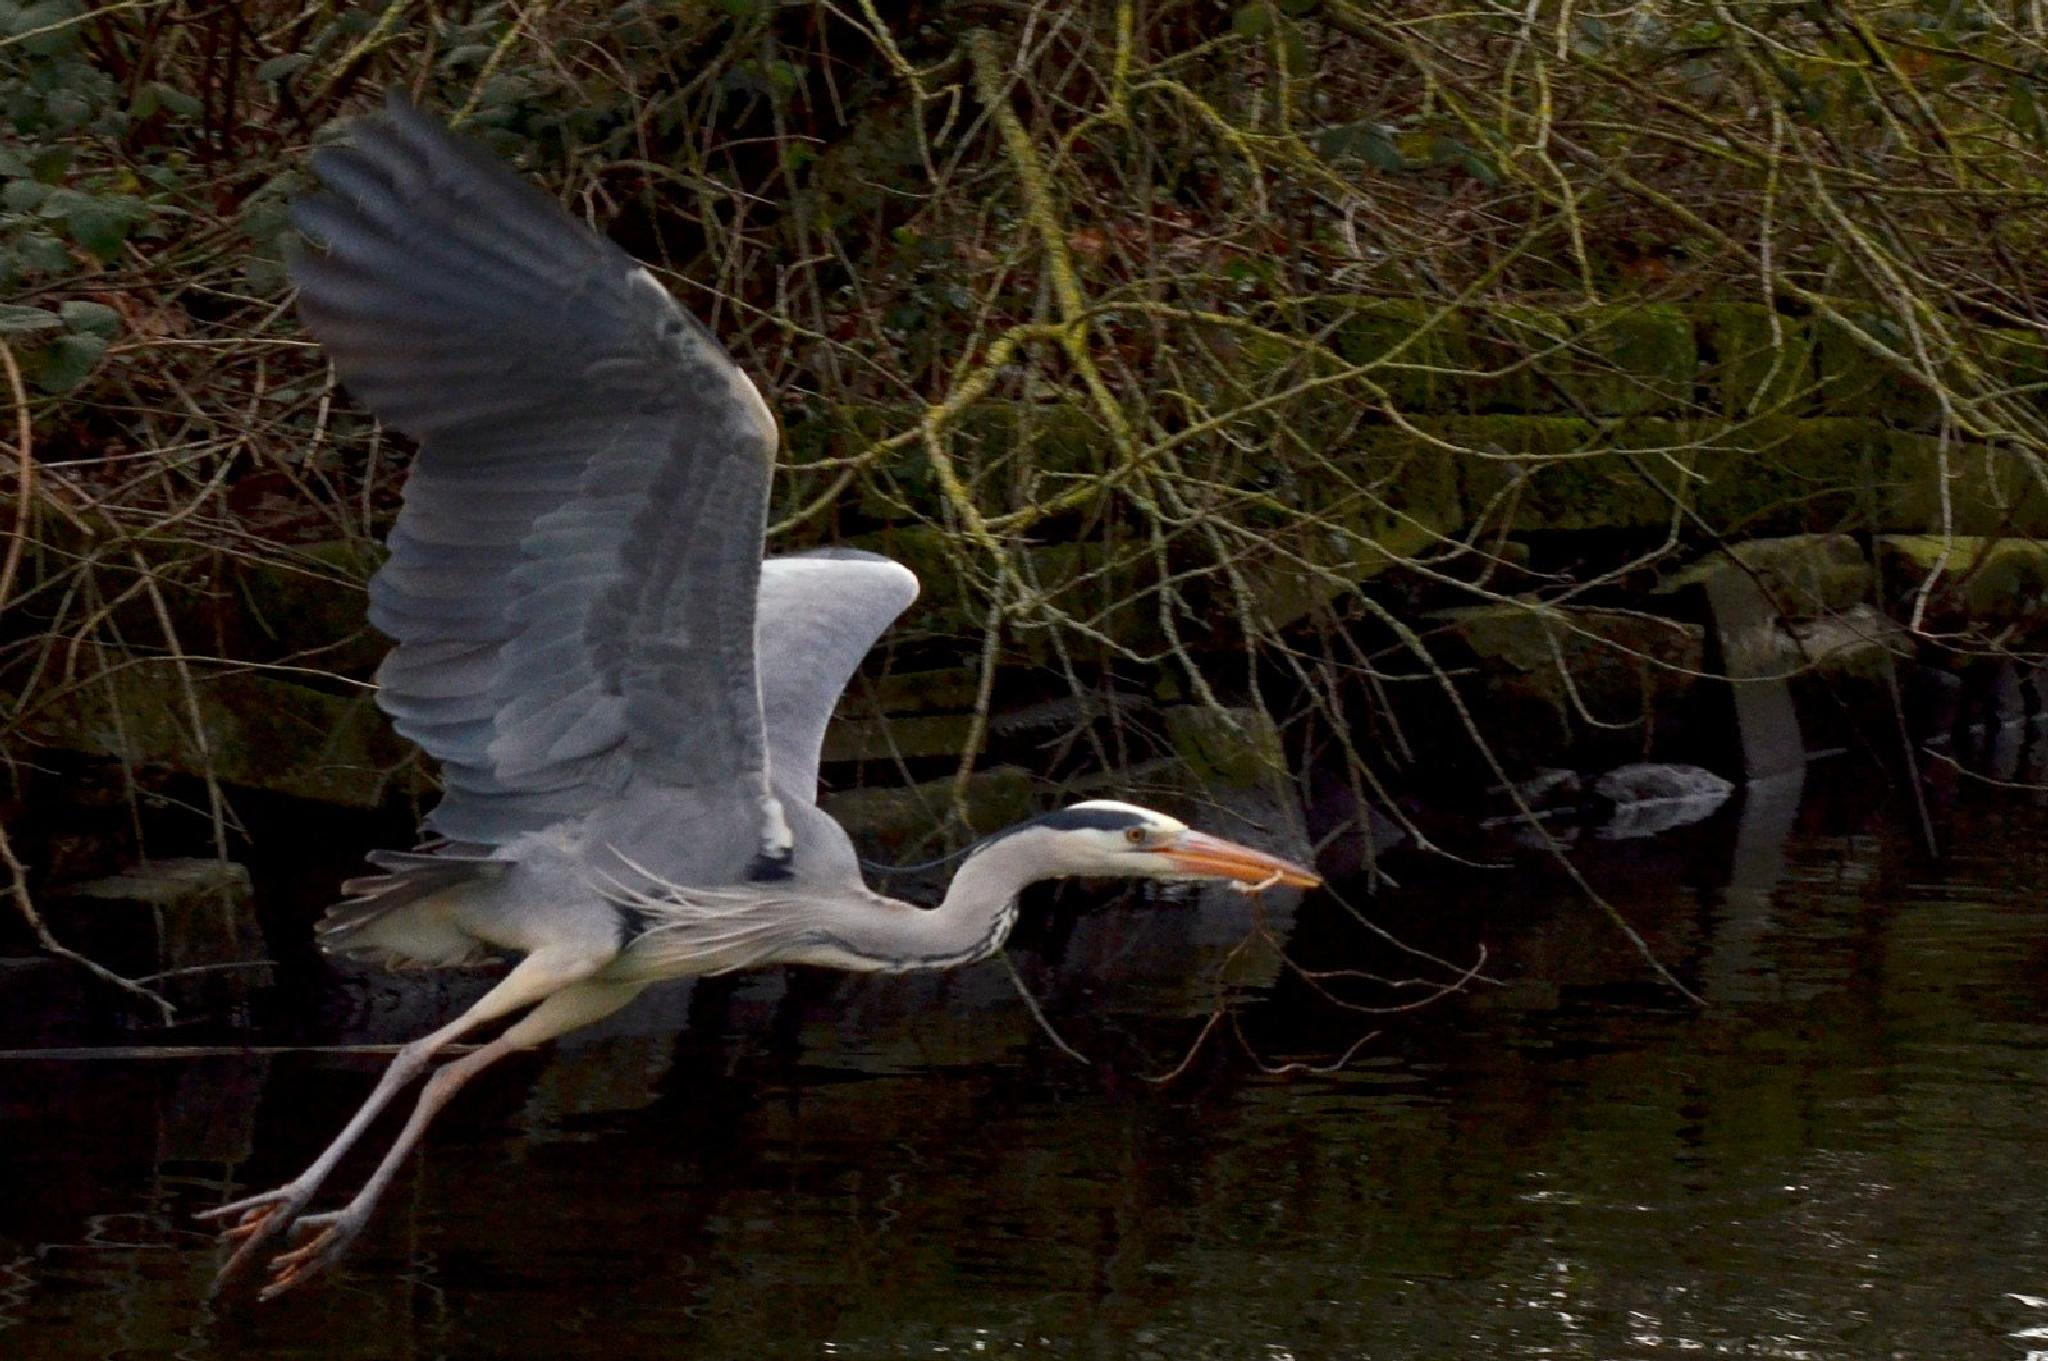 Heron collecting nesting material by jeffdixon